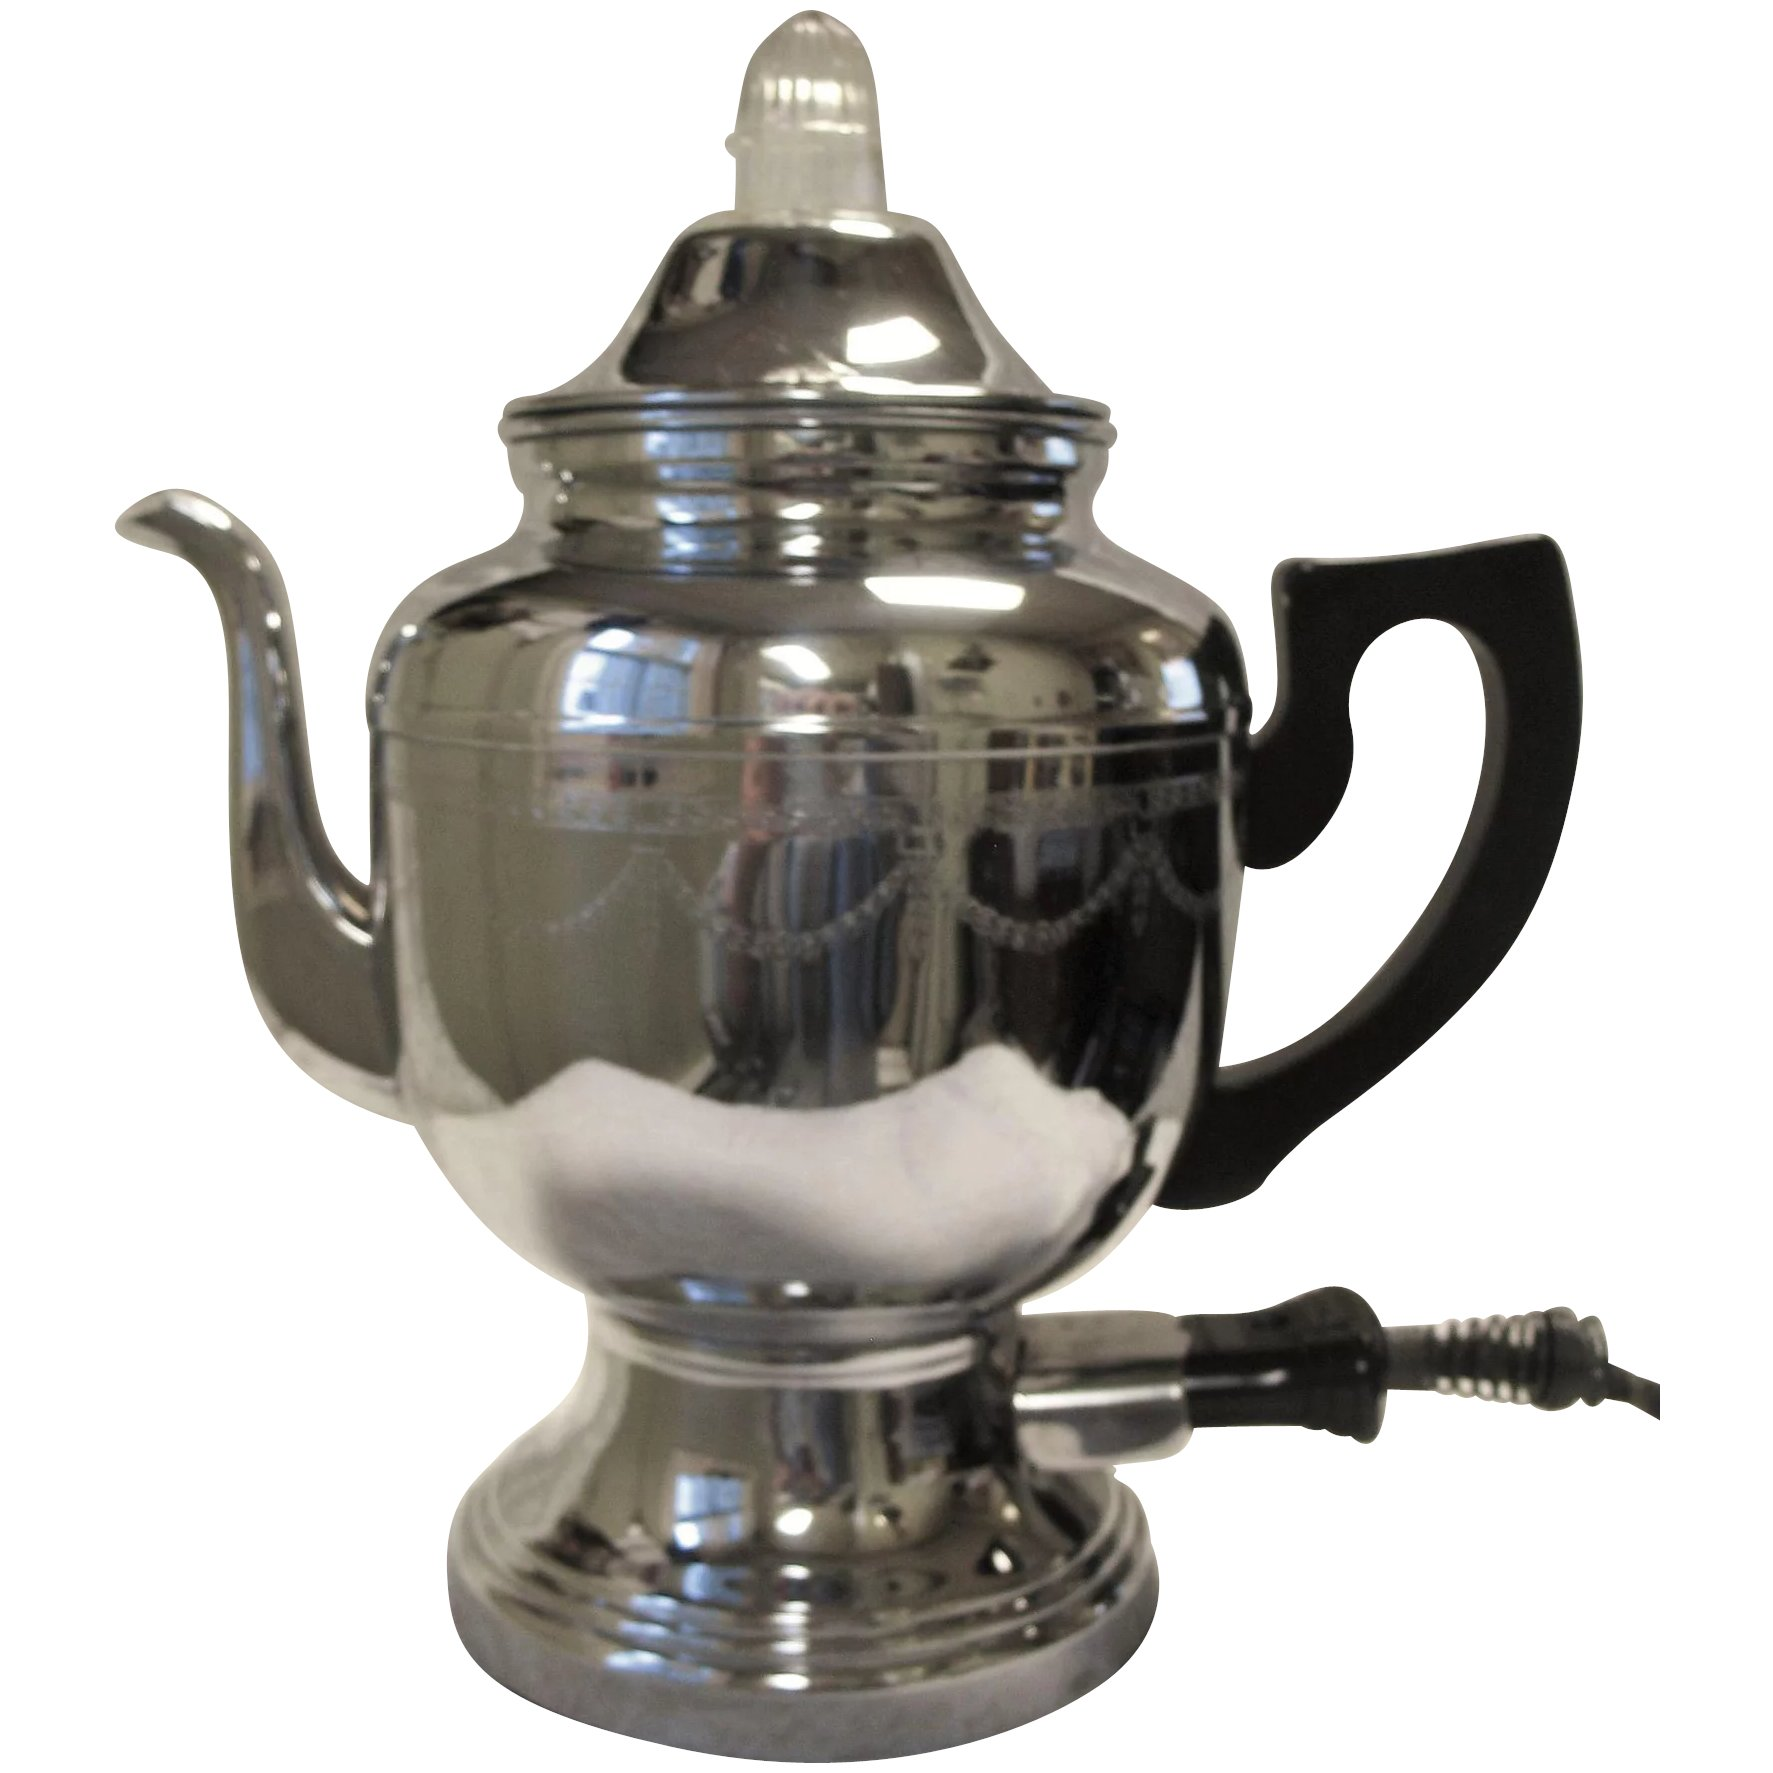 Be A Ed D Ce A Fe furthermore Vintage Farberware Electric Coffee Percolator Pot Full A F likewise D Ecm Mounting Ls Swap Img additionally A Large also G Large. on vintage fuse box